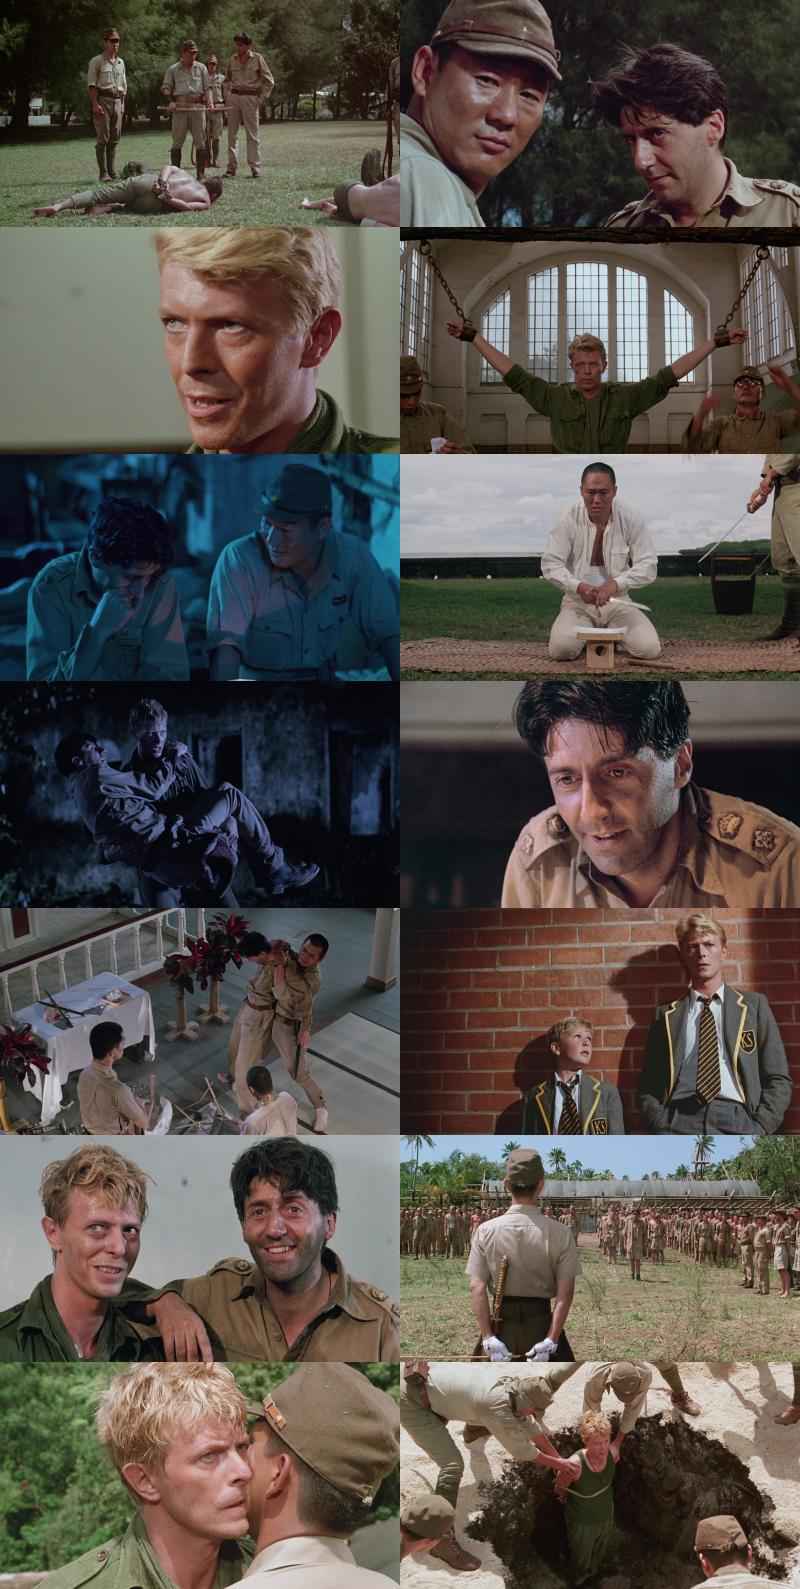 http://watershade.net/public/merry-christmas-mr-lawrence.jpg